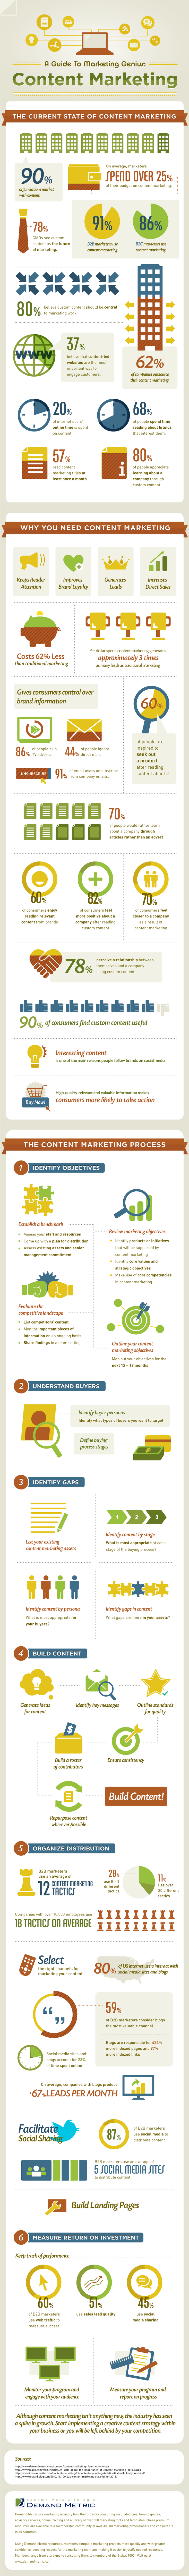 content marketing infographic